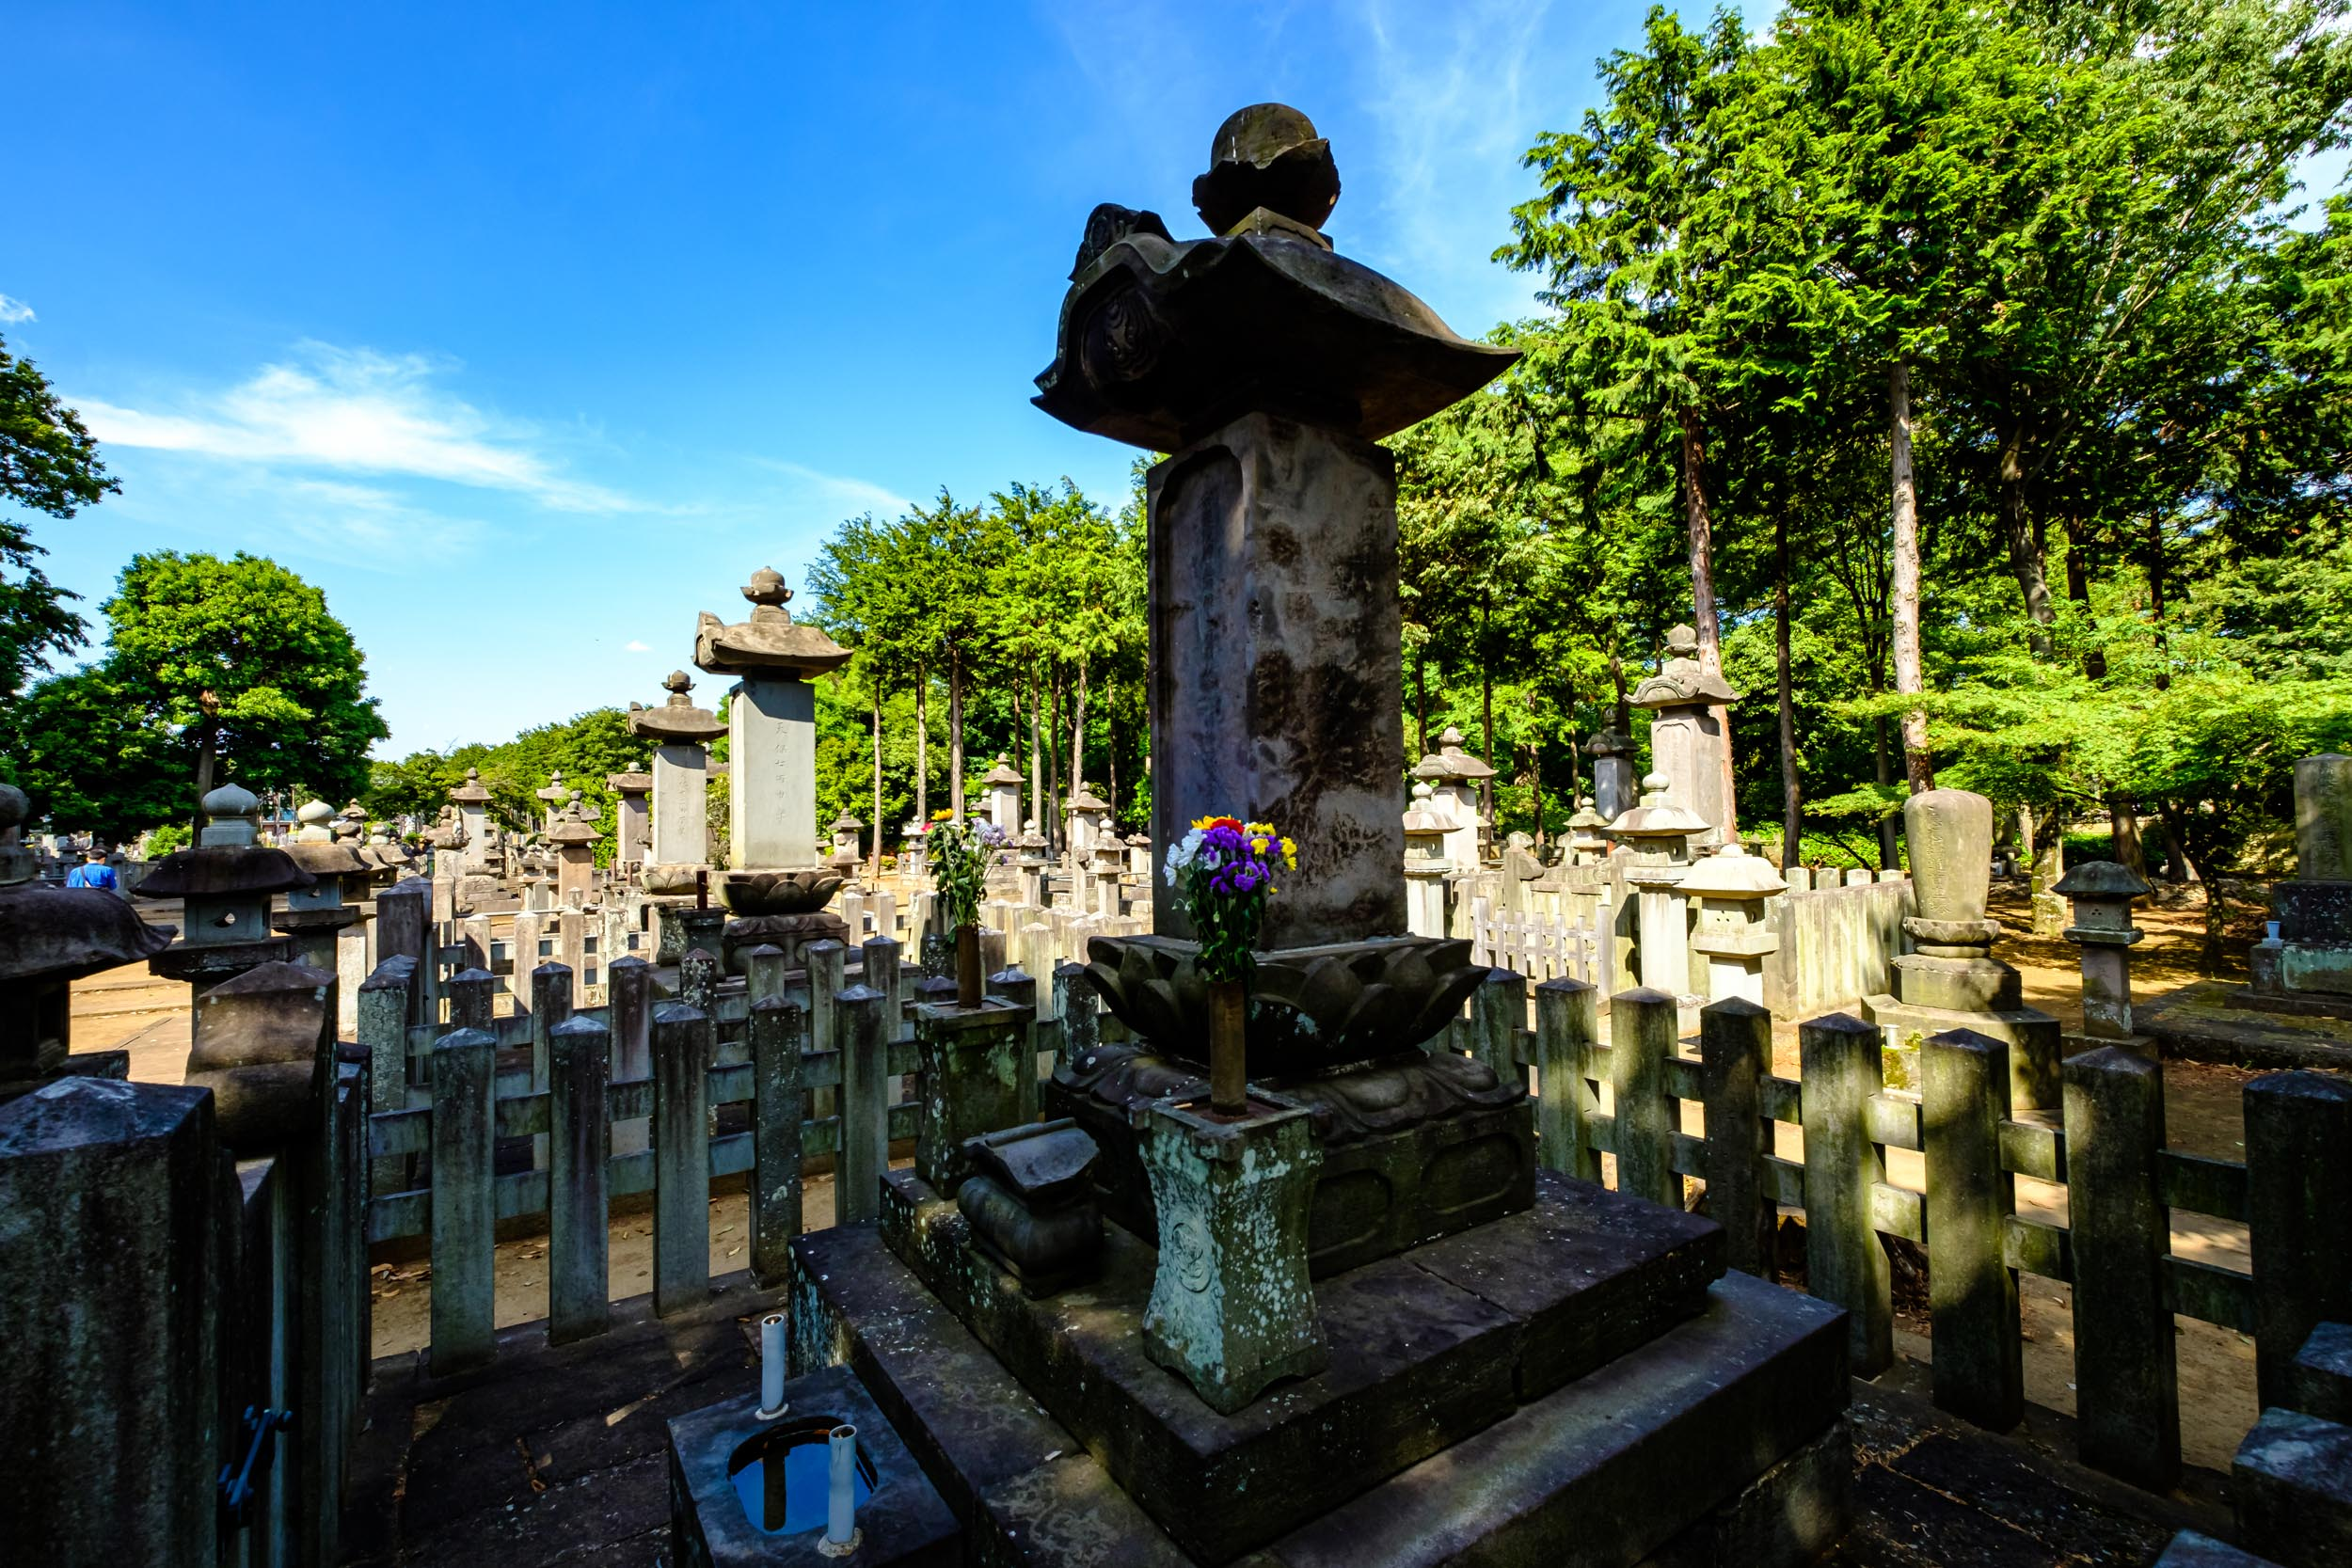 The grave of Ii Naosuke